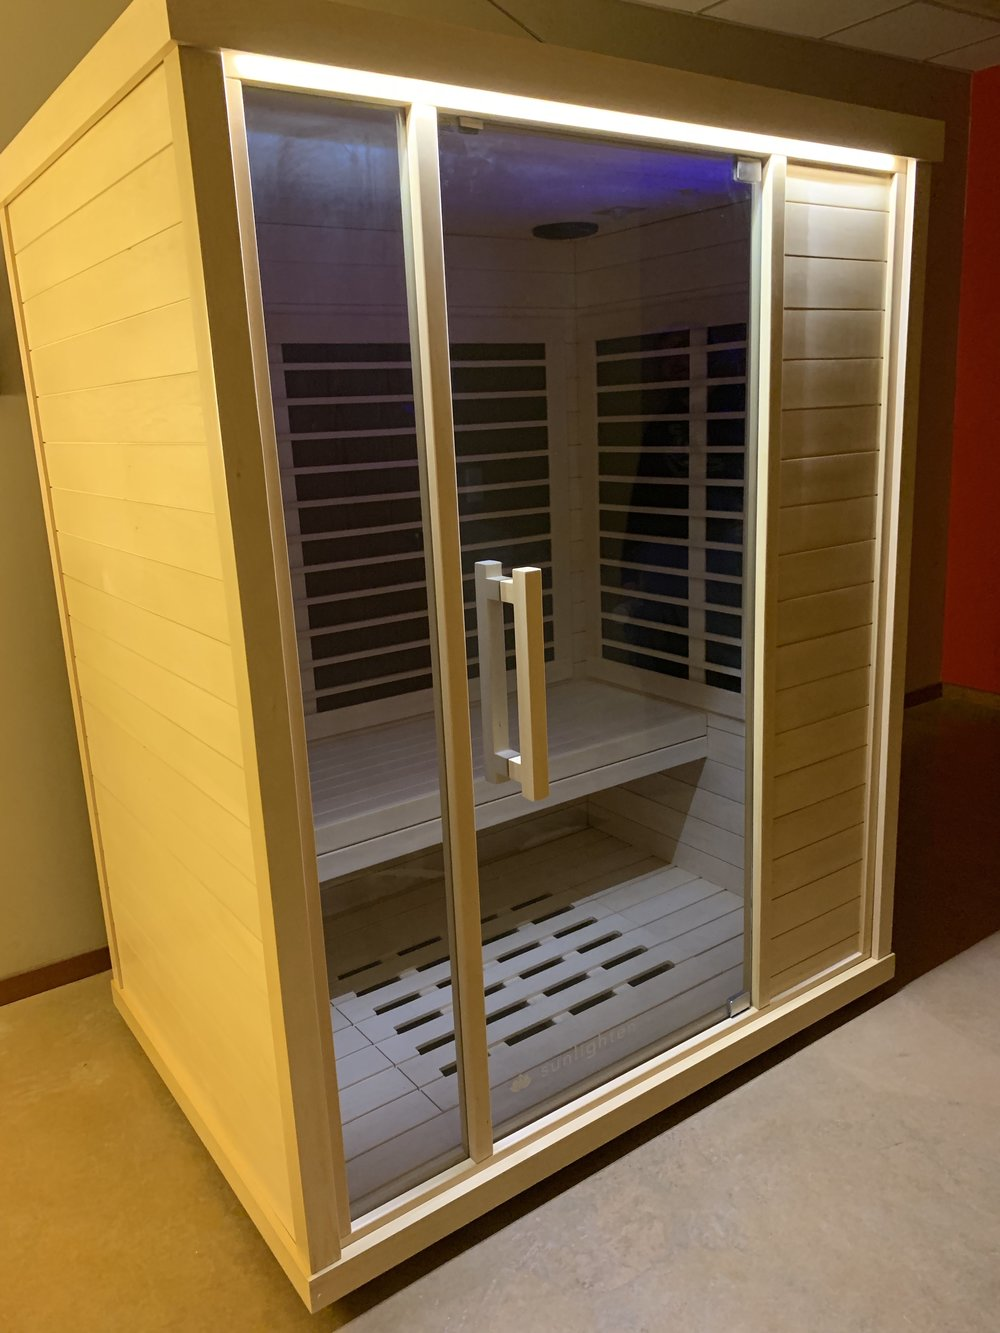 Medical Grade Infrared Sauna @ Warehouse660